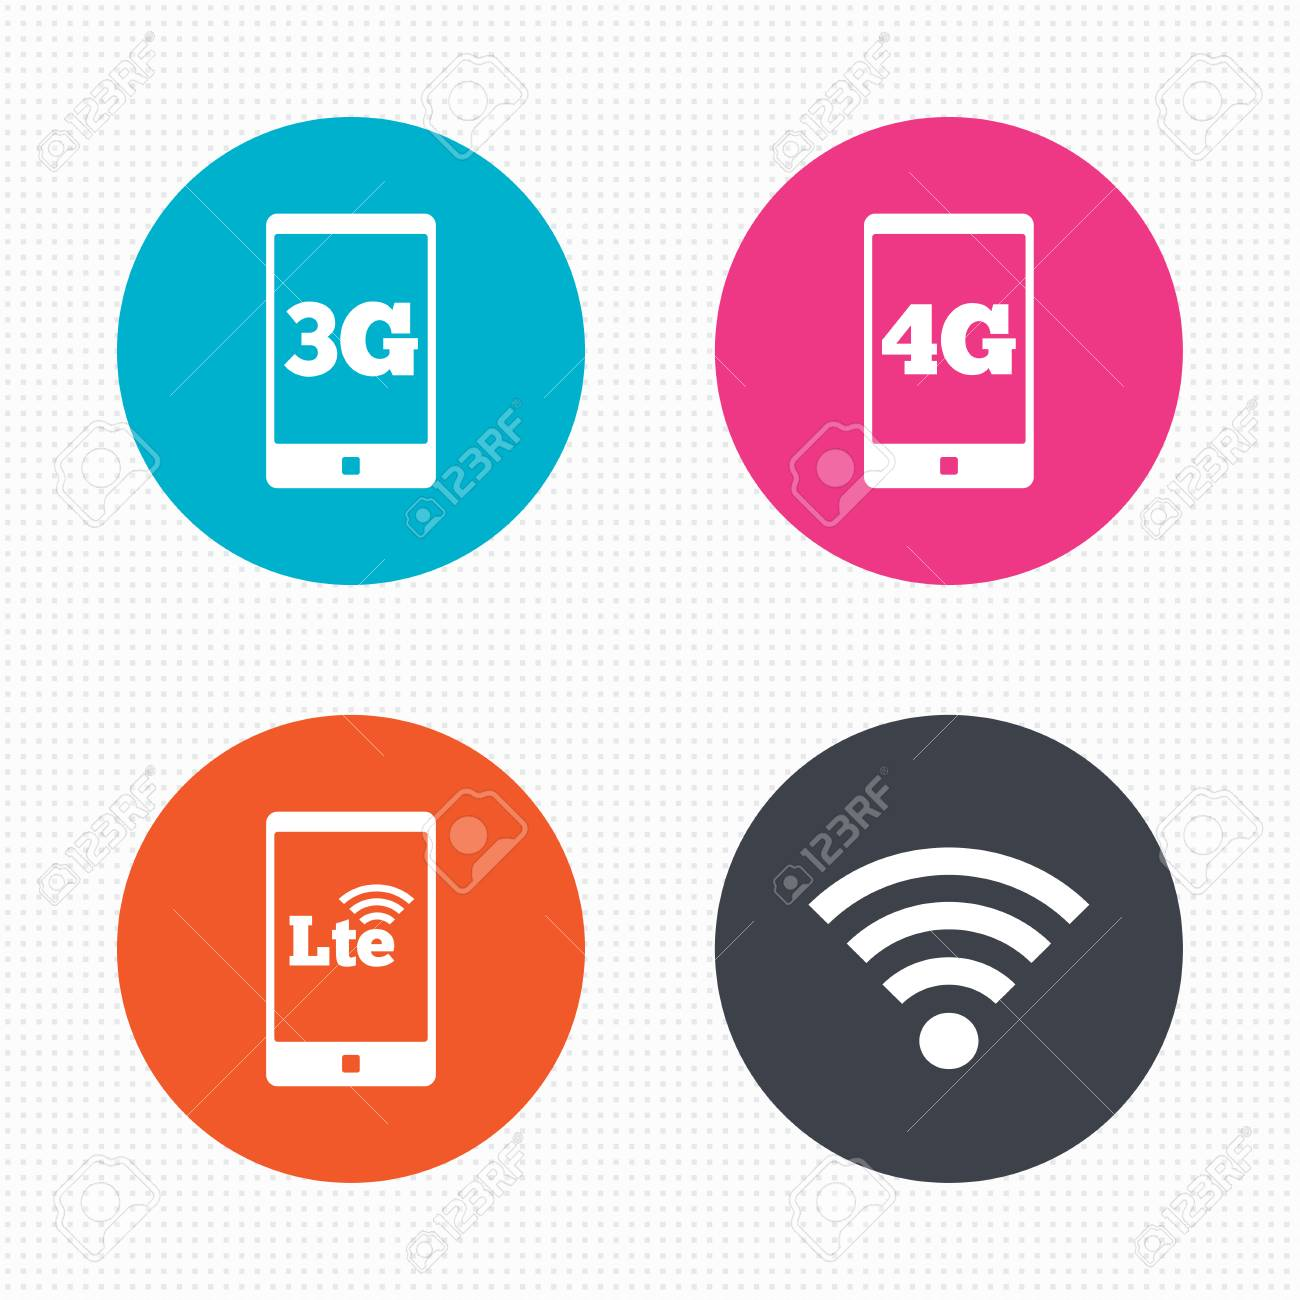 circle buttons mobile telecommunications icons 3g 4g and lte